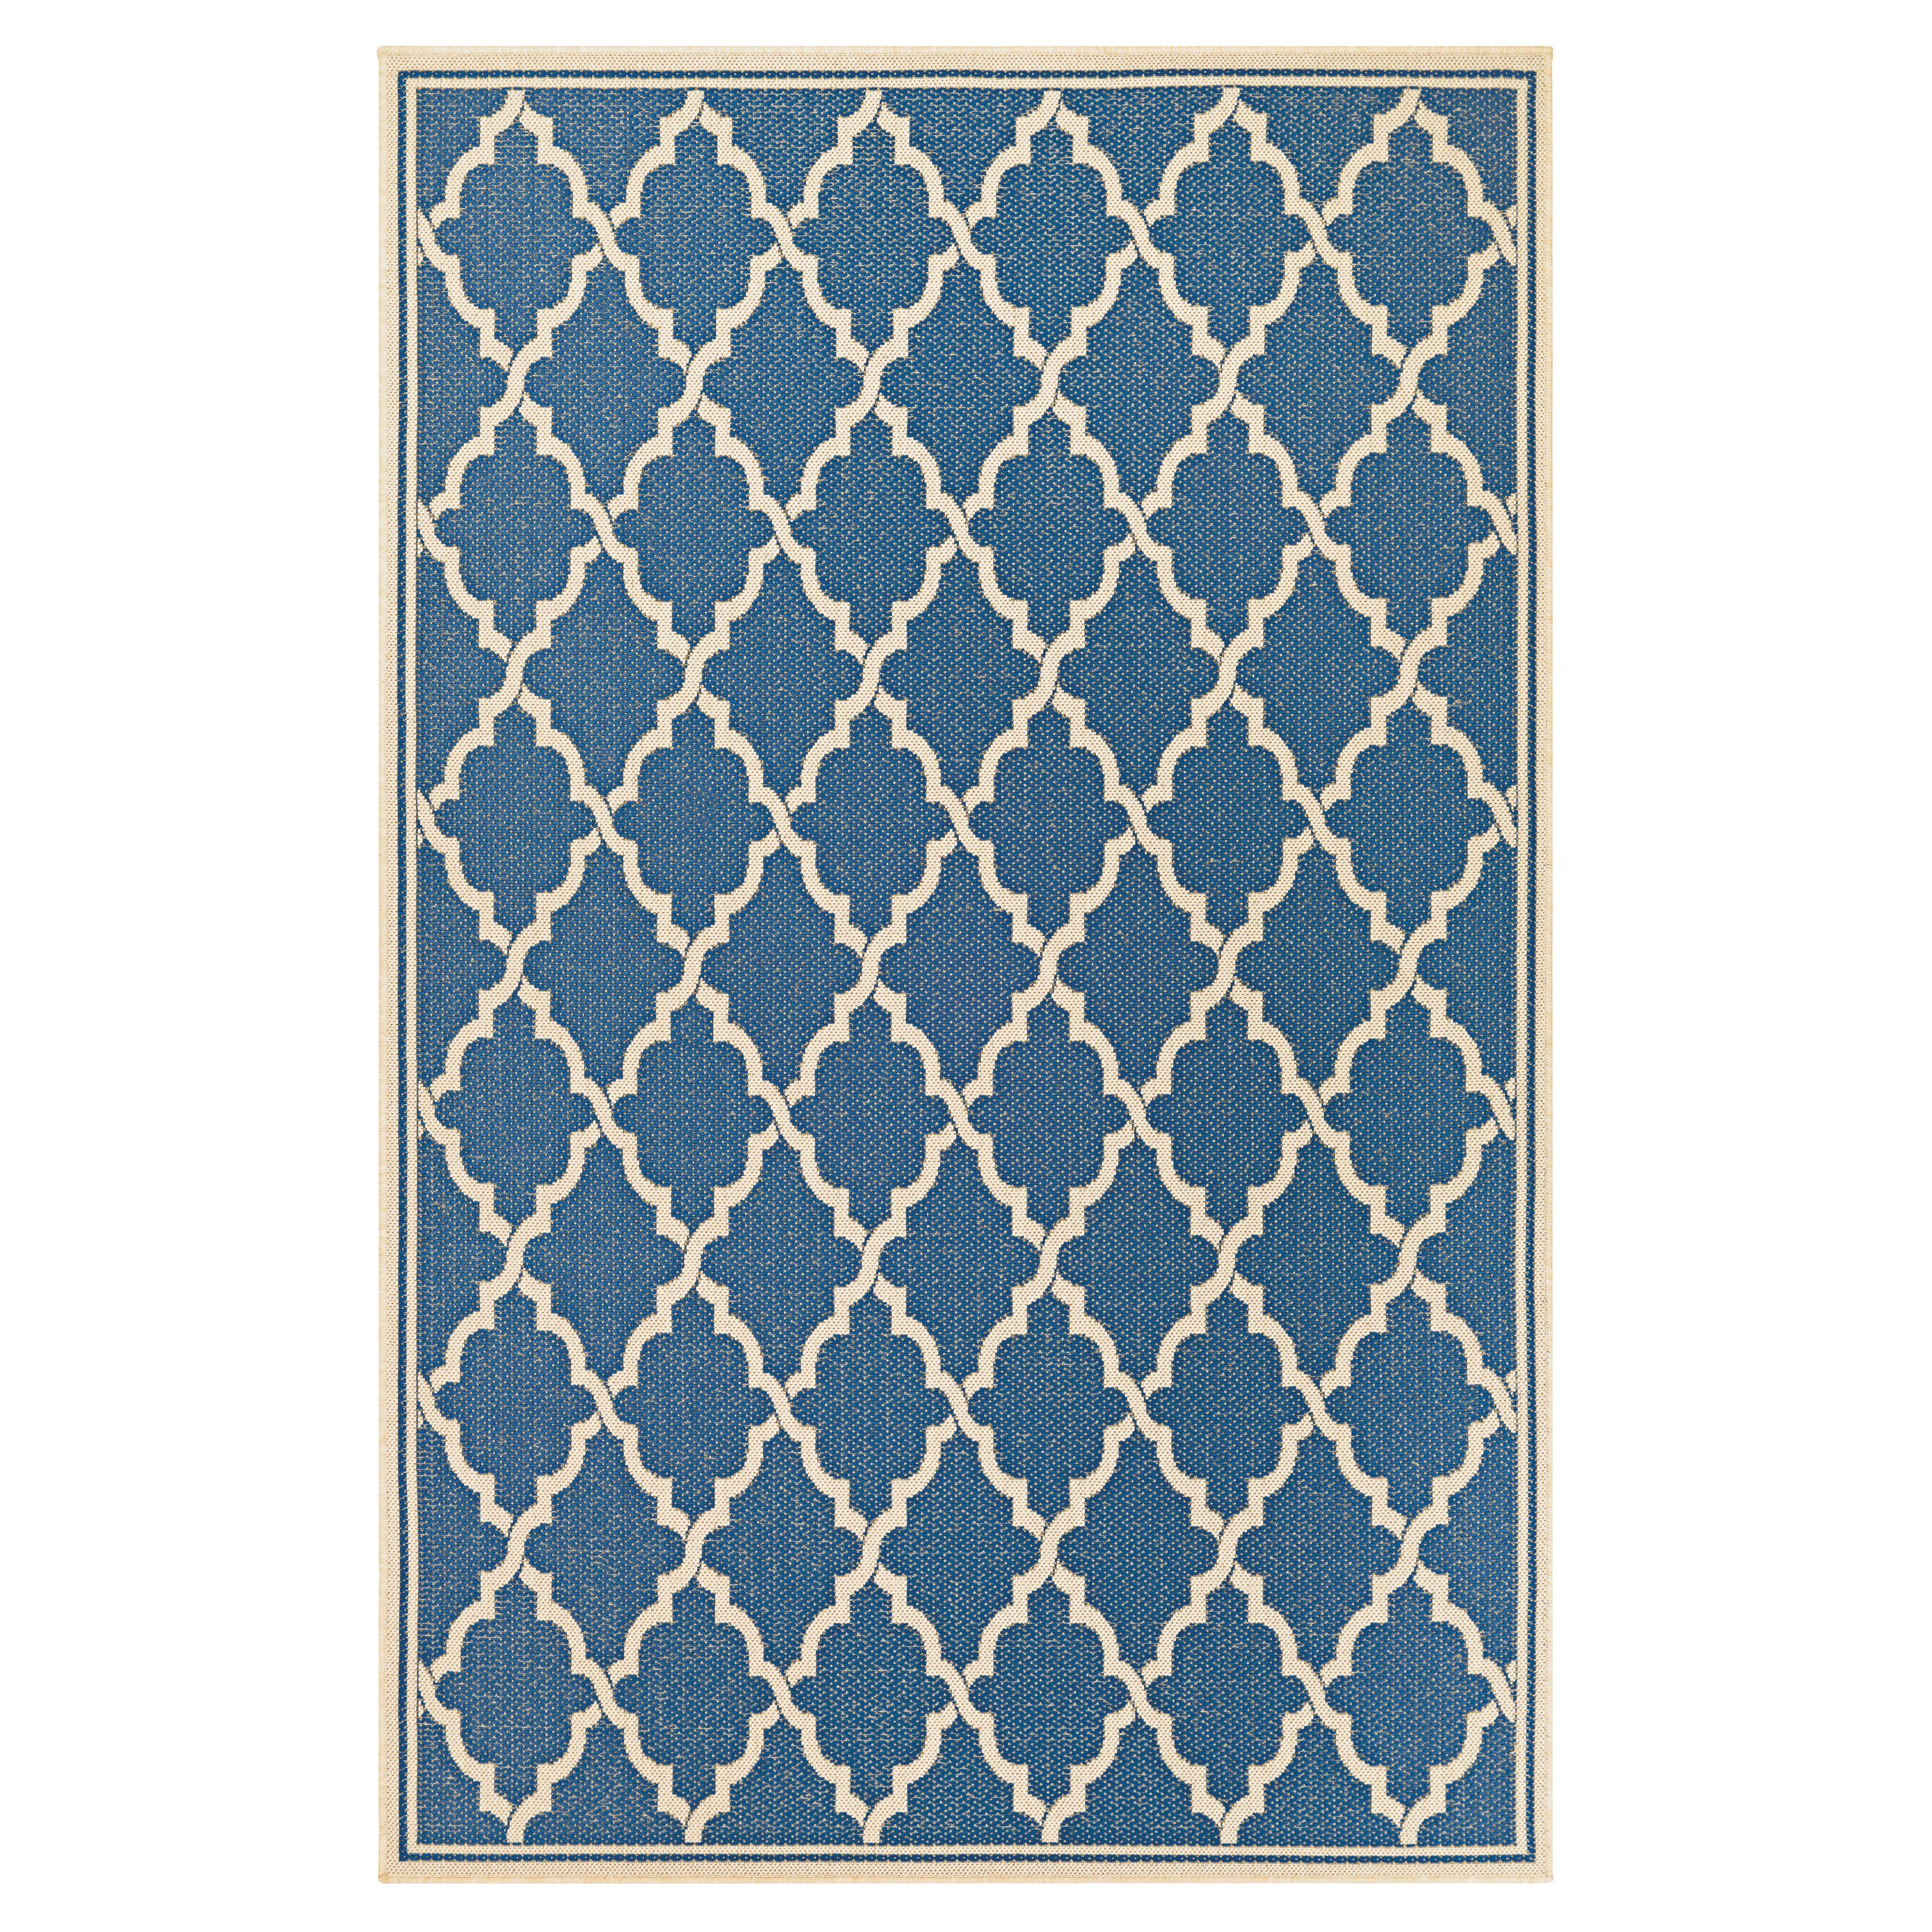 Couristan Monaco 788110 Ocean Port Indoor Outdoor Area Rug